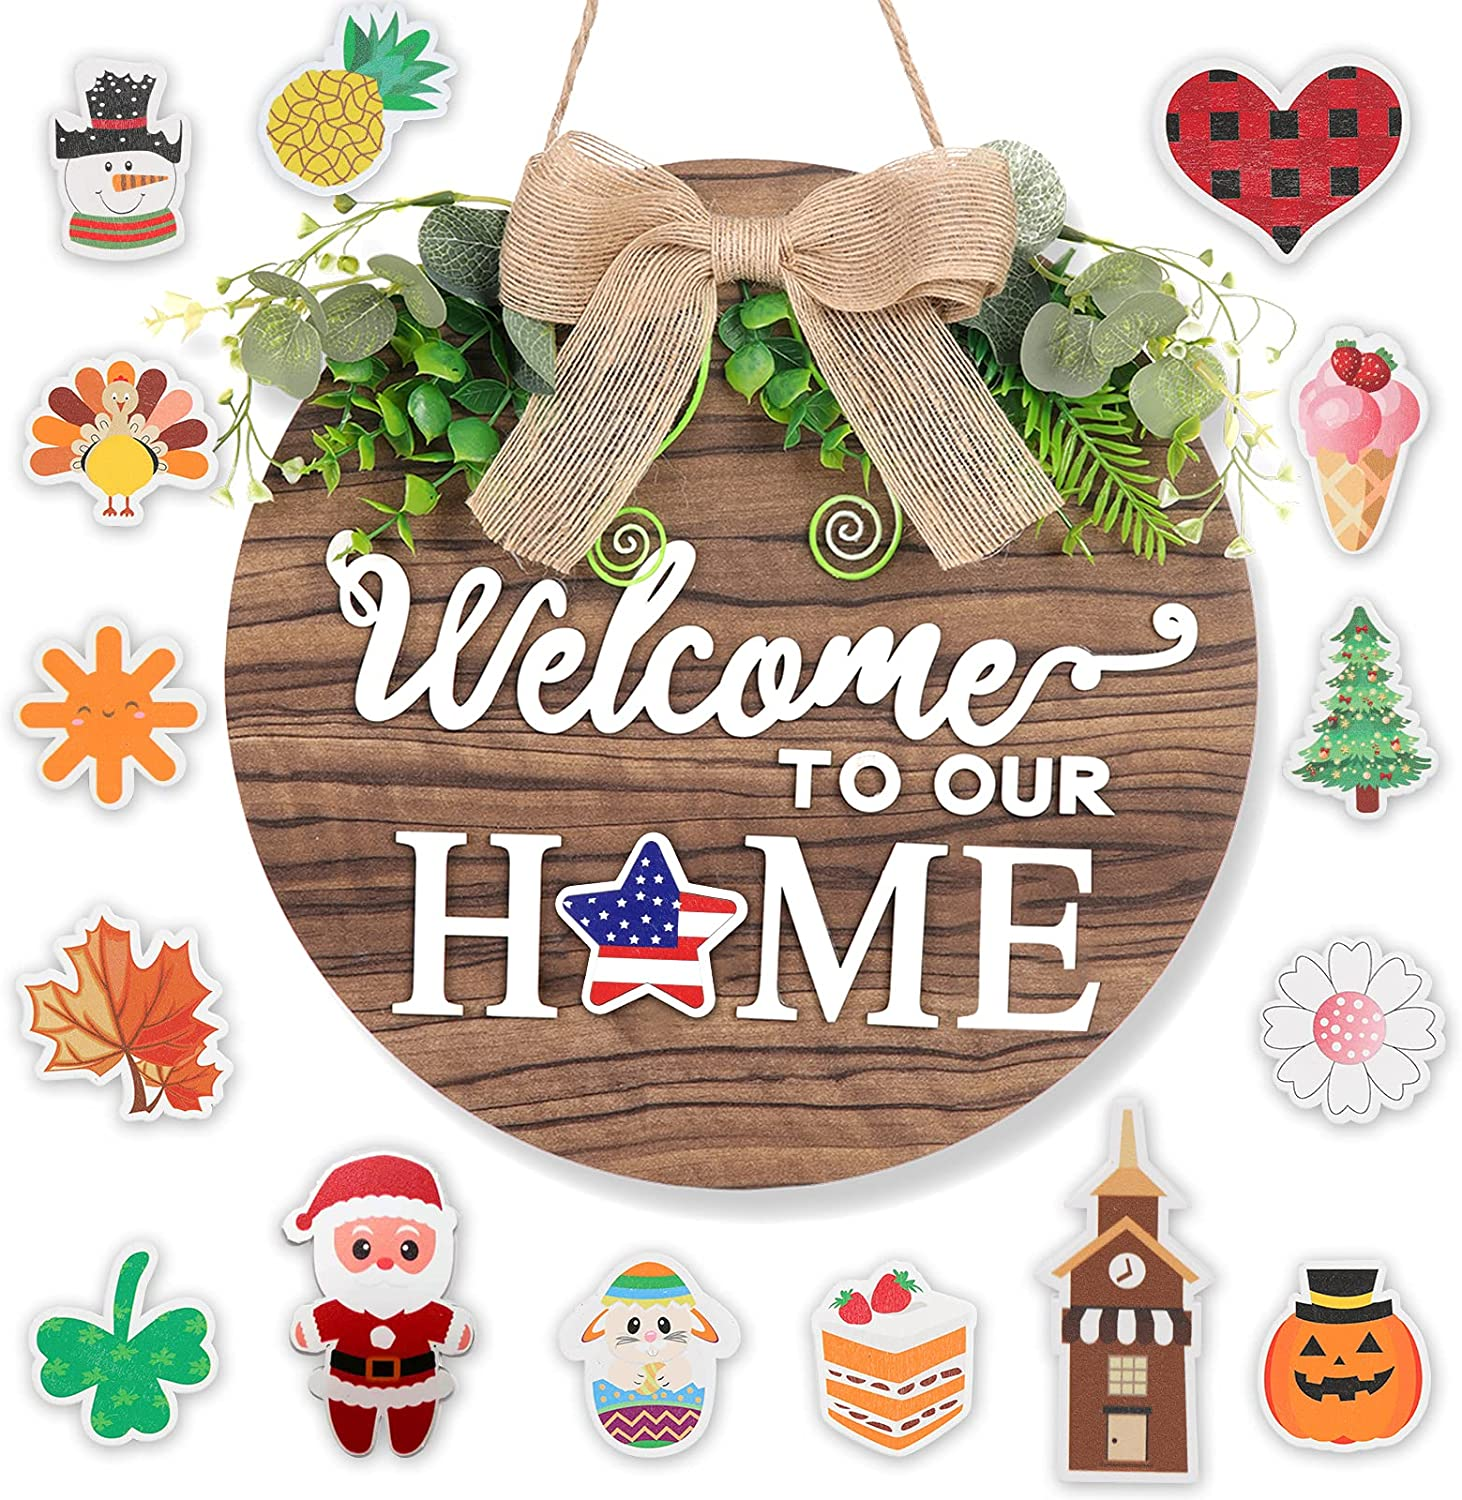 Wooden Seasonal Welcome Sign For Front Door, Interchangeable Holiday Welcome To Our Home Hanging Door Sign For Front Porch 16 Holiday Icons Farmhouse Outdoor Housewarming Gifts Christmas Door Decor